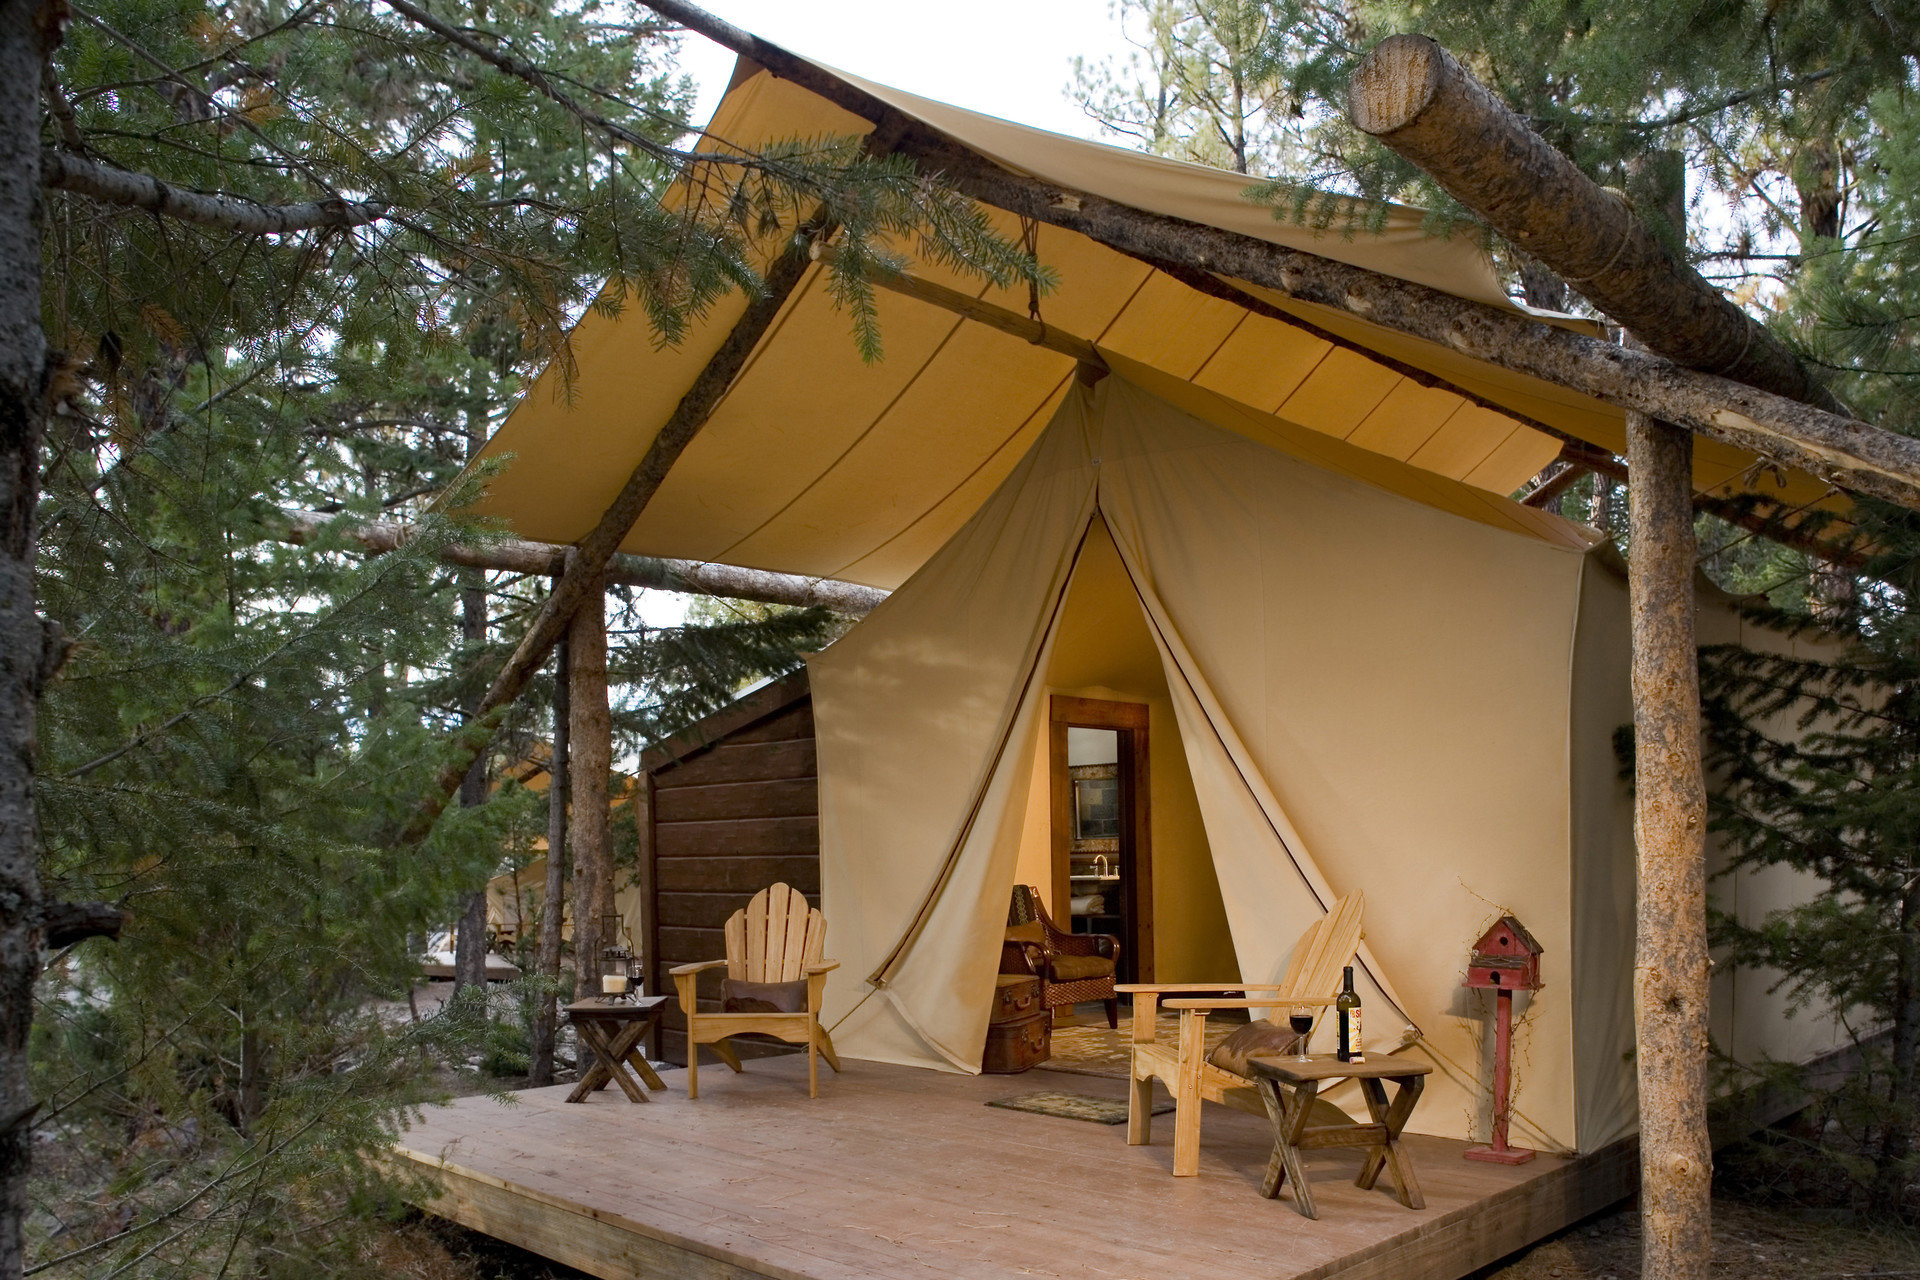 Exterior Luxury Nature Outdoors remote Rustic tent tents wilderness tree house building log cabin hut home cottage outdoor structure shack shrine chapel